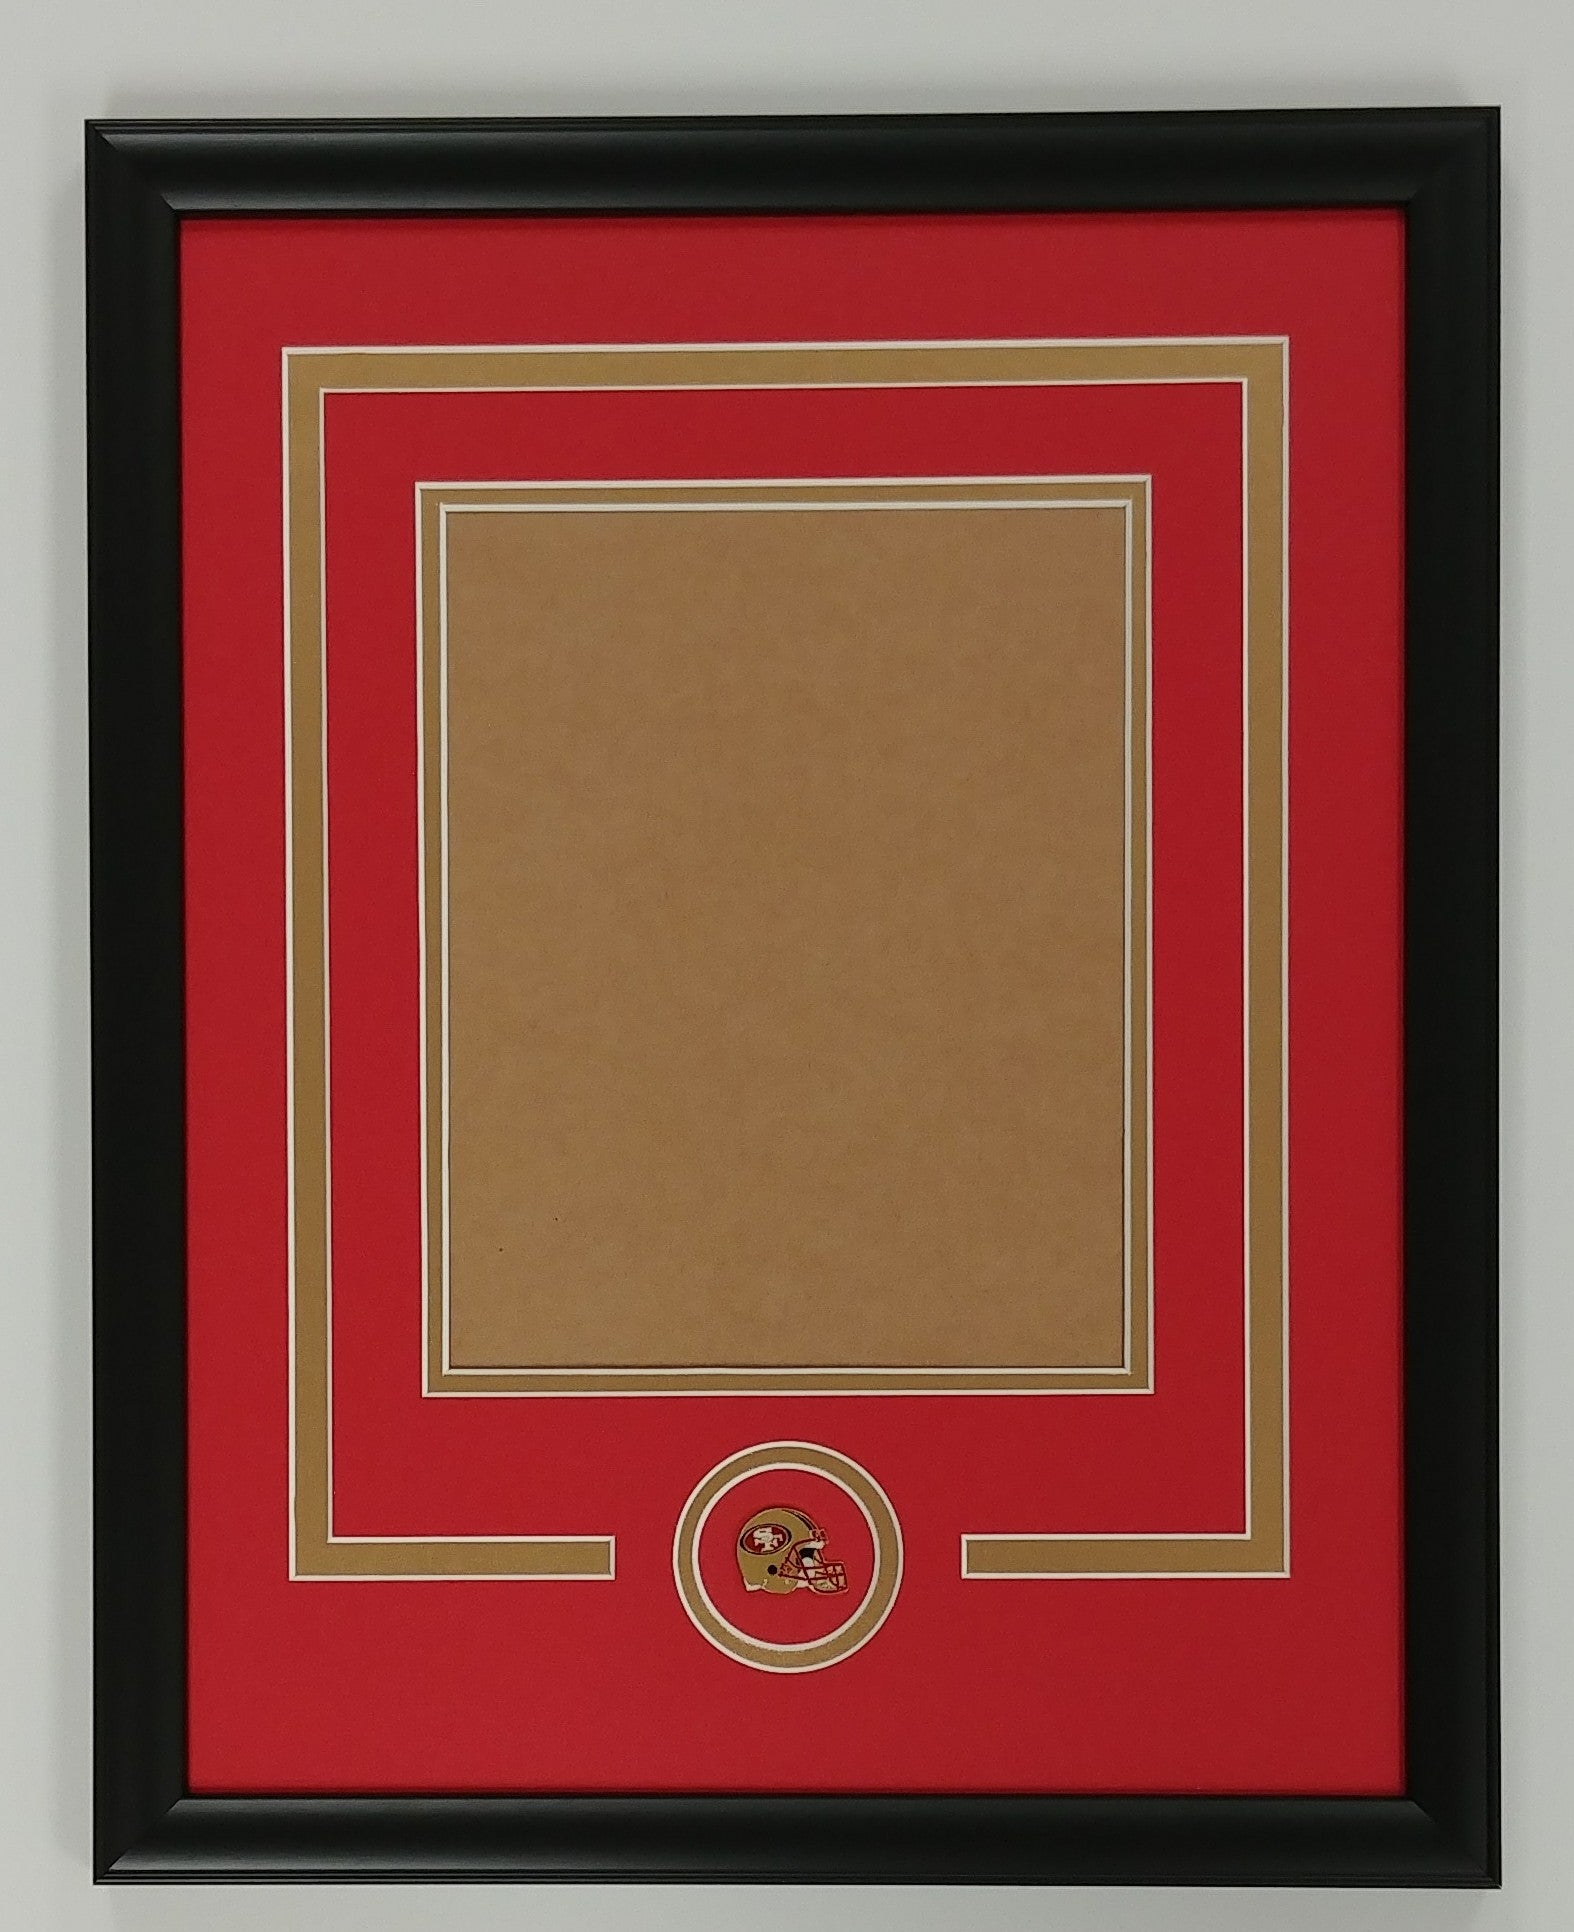 San Francisco 49ers 8x10 Photo Frame Kit